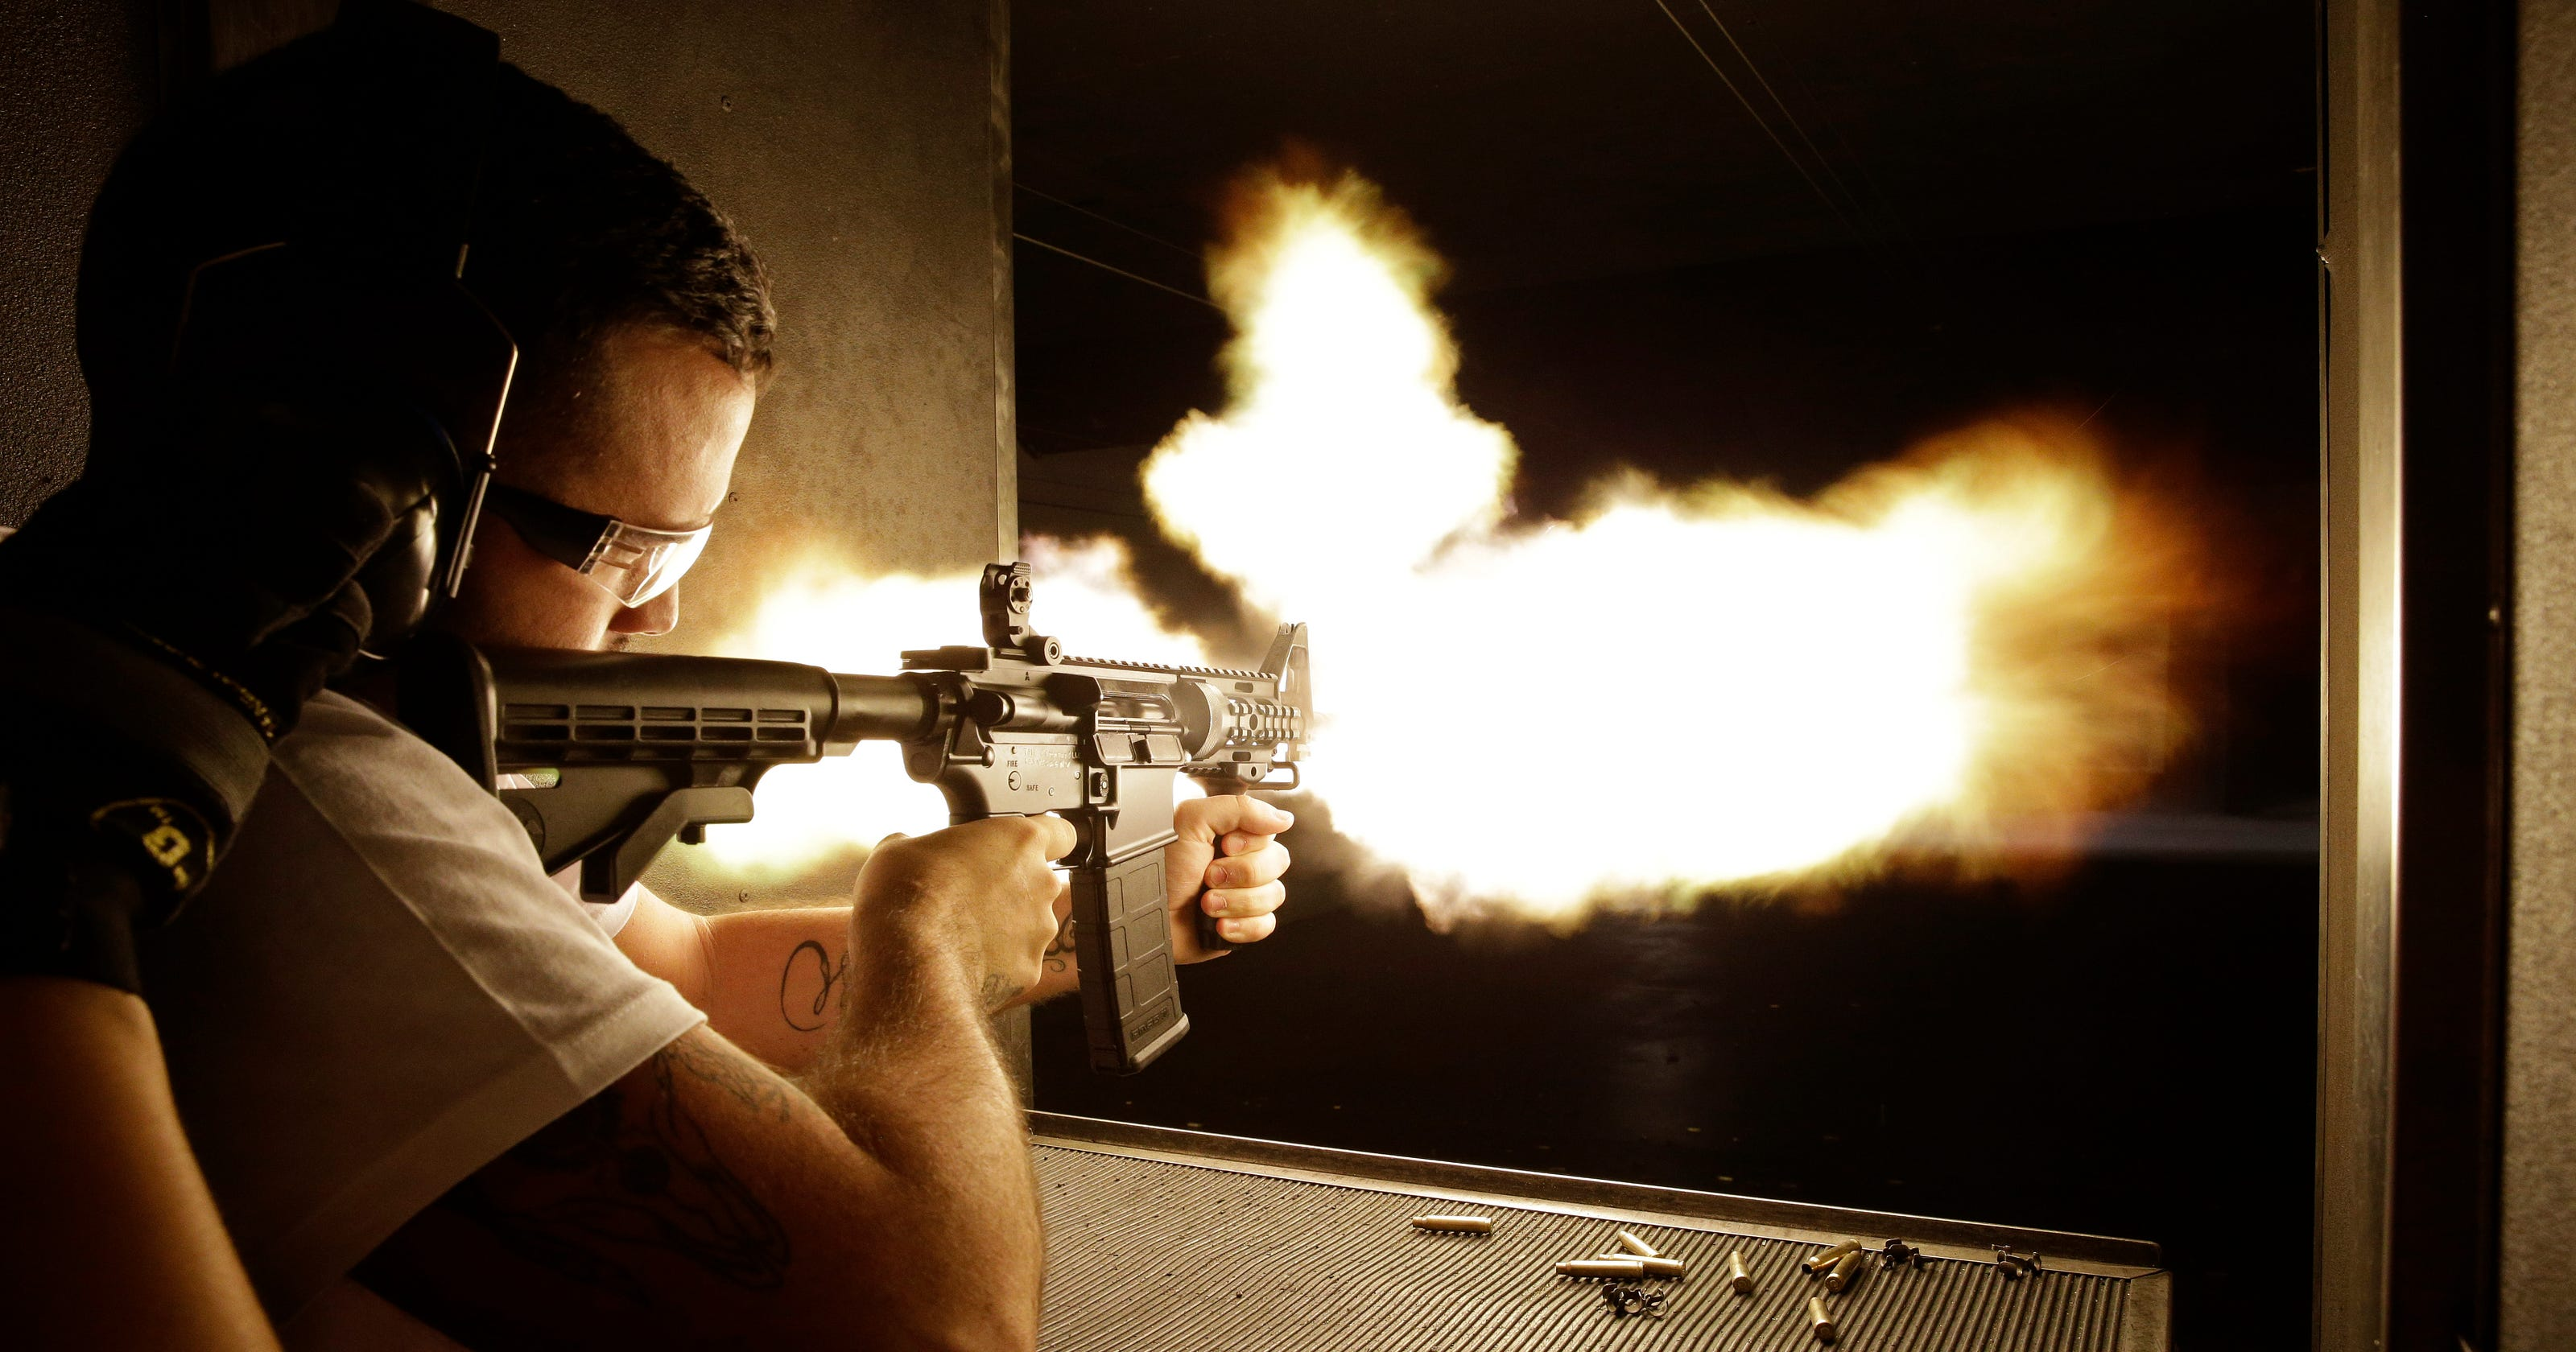 Las Vegas machine gun rentals have attracted tourists for years